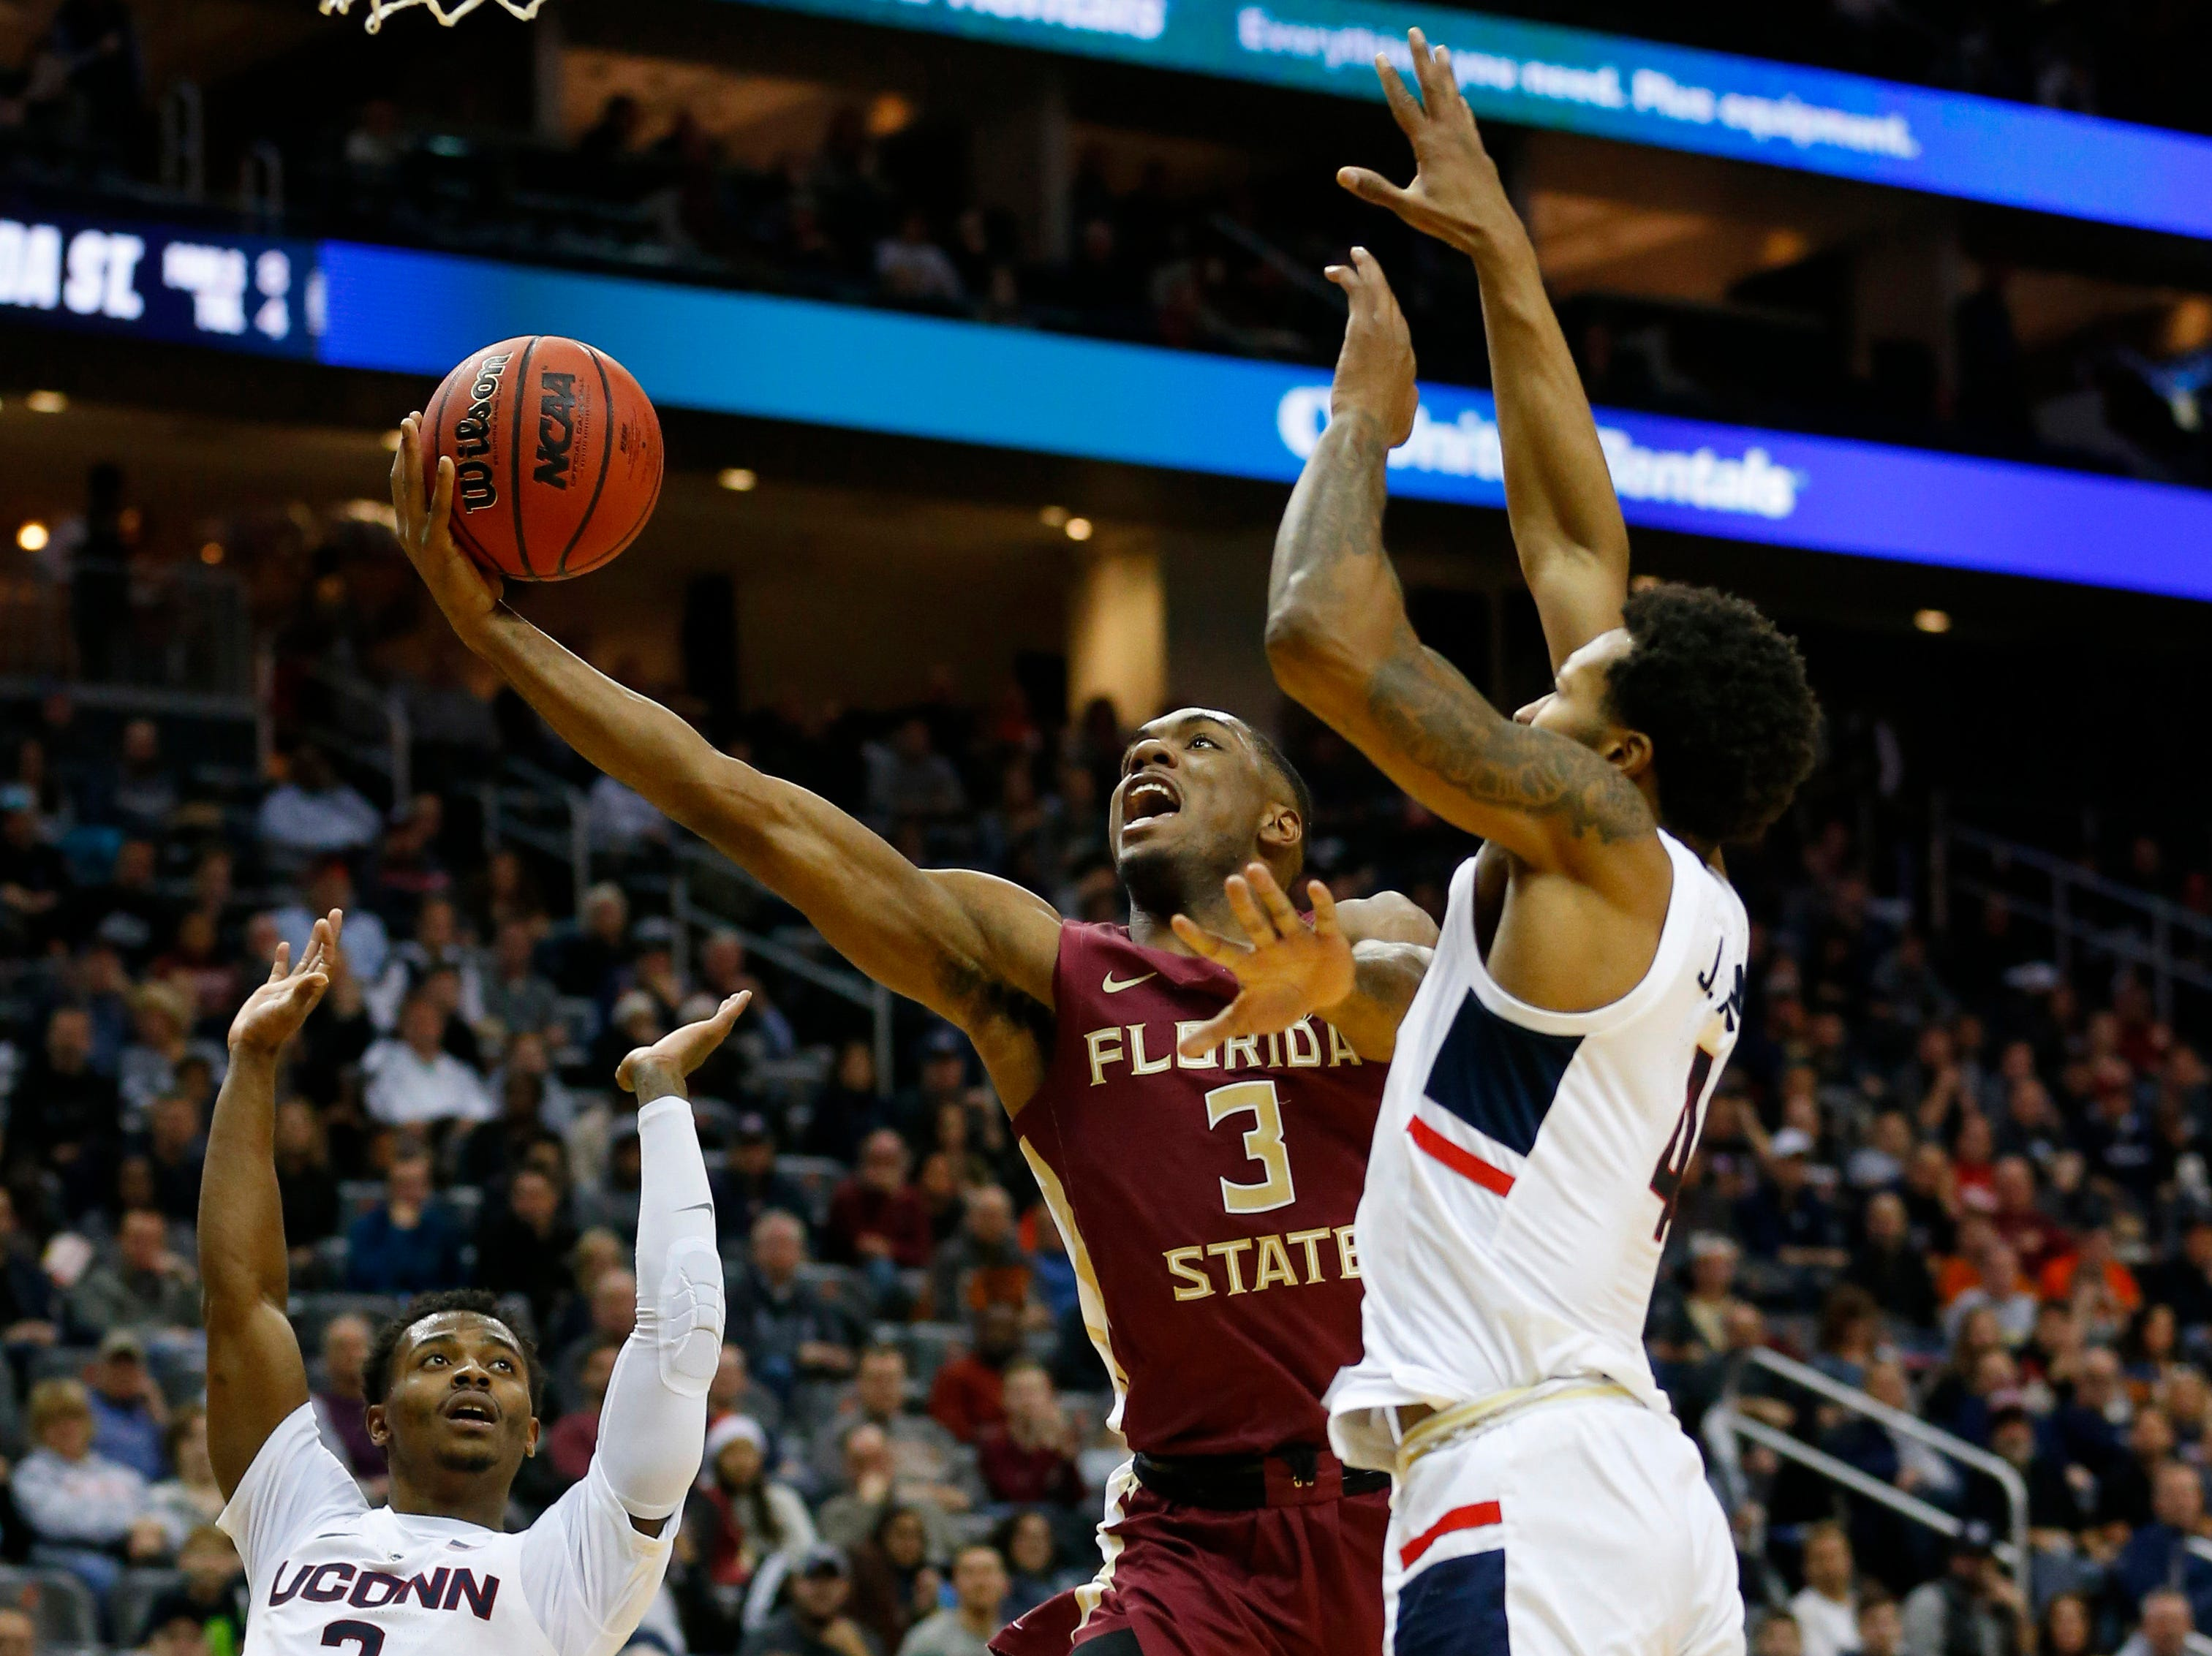 Dec 8, 2018; Newark, NJ, USA; Florida State Seminoles guard Trent Forrest (3) goes to the basket against Connecticut Huskies guard Alterique Gilbert (3) and guard Jalen Adams (4) during the first half at Prudential Center. Mandatory Credit: Noah K. Murray-USA TODAY Sports